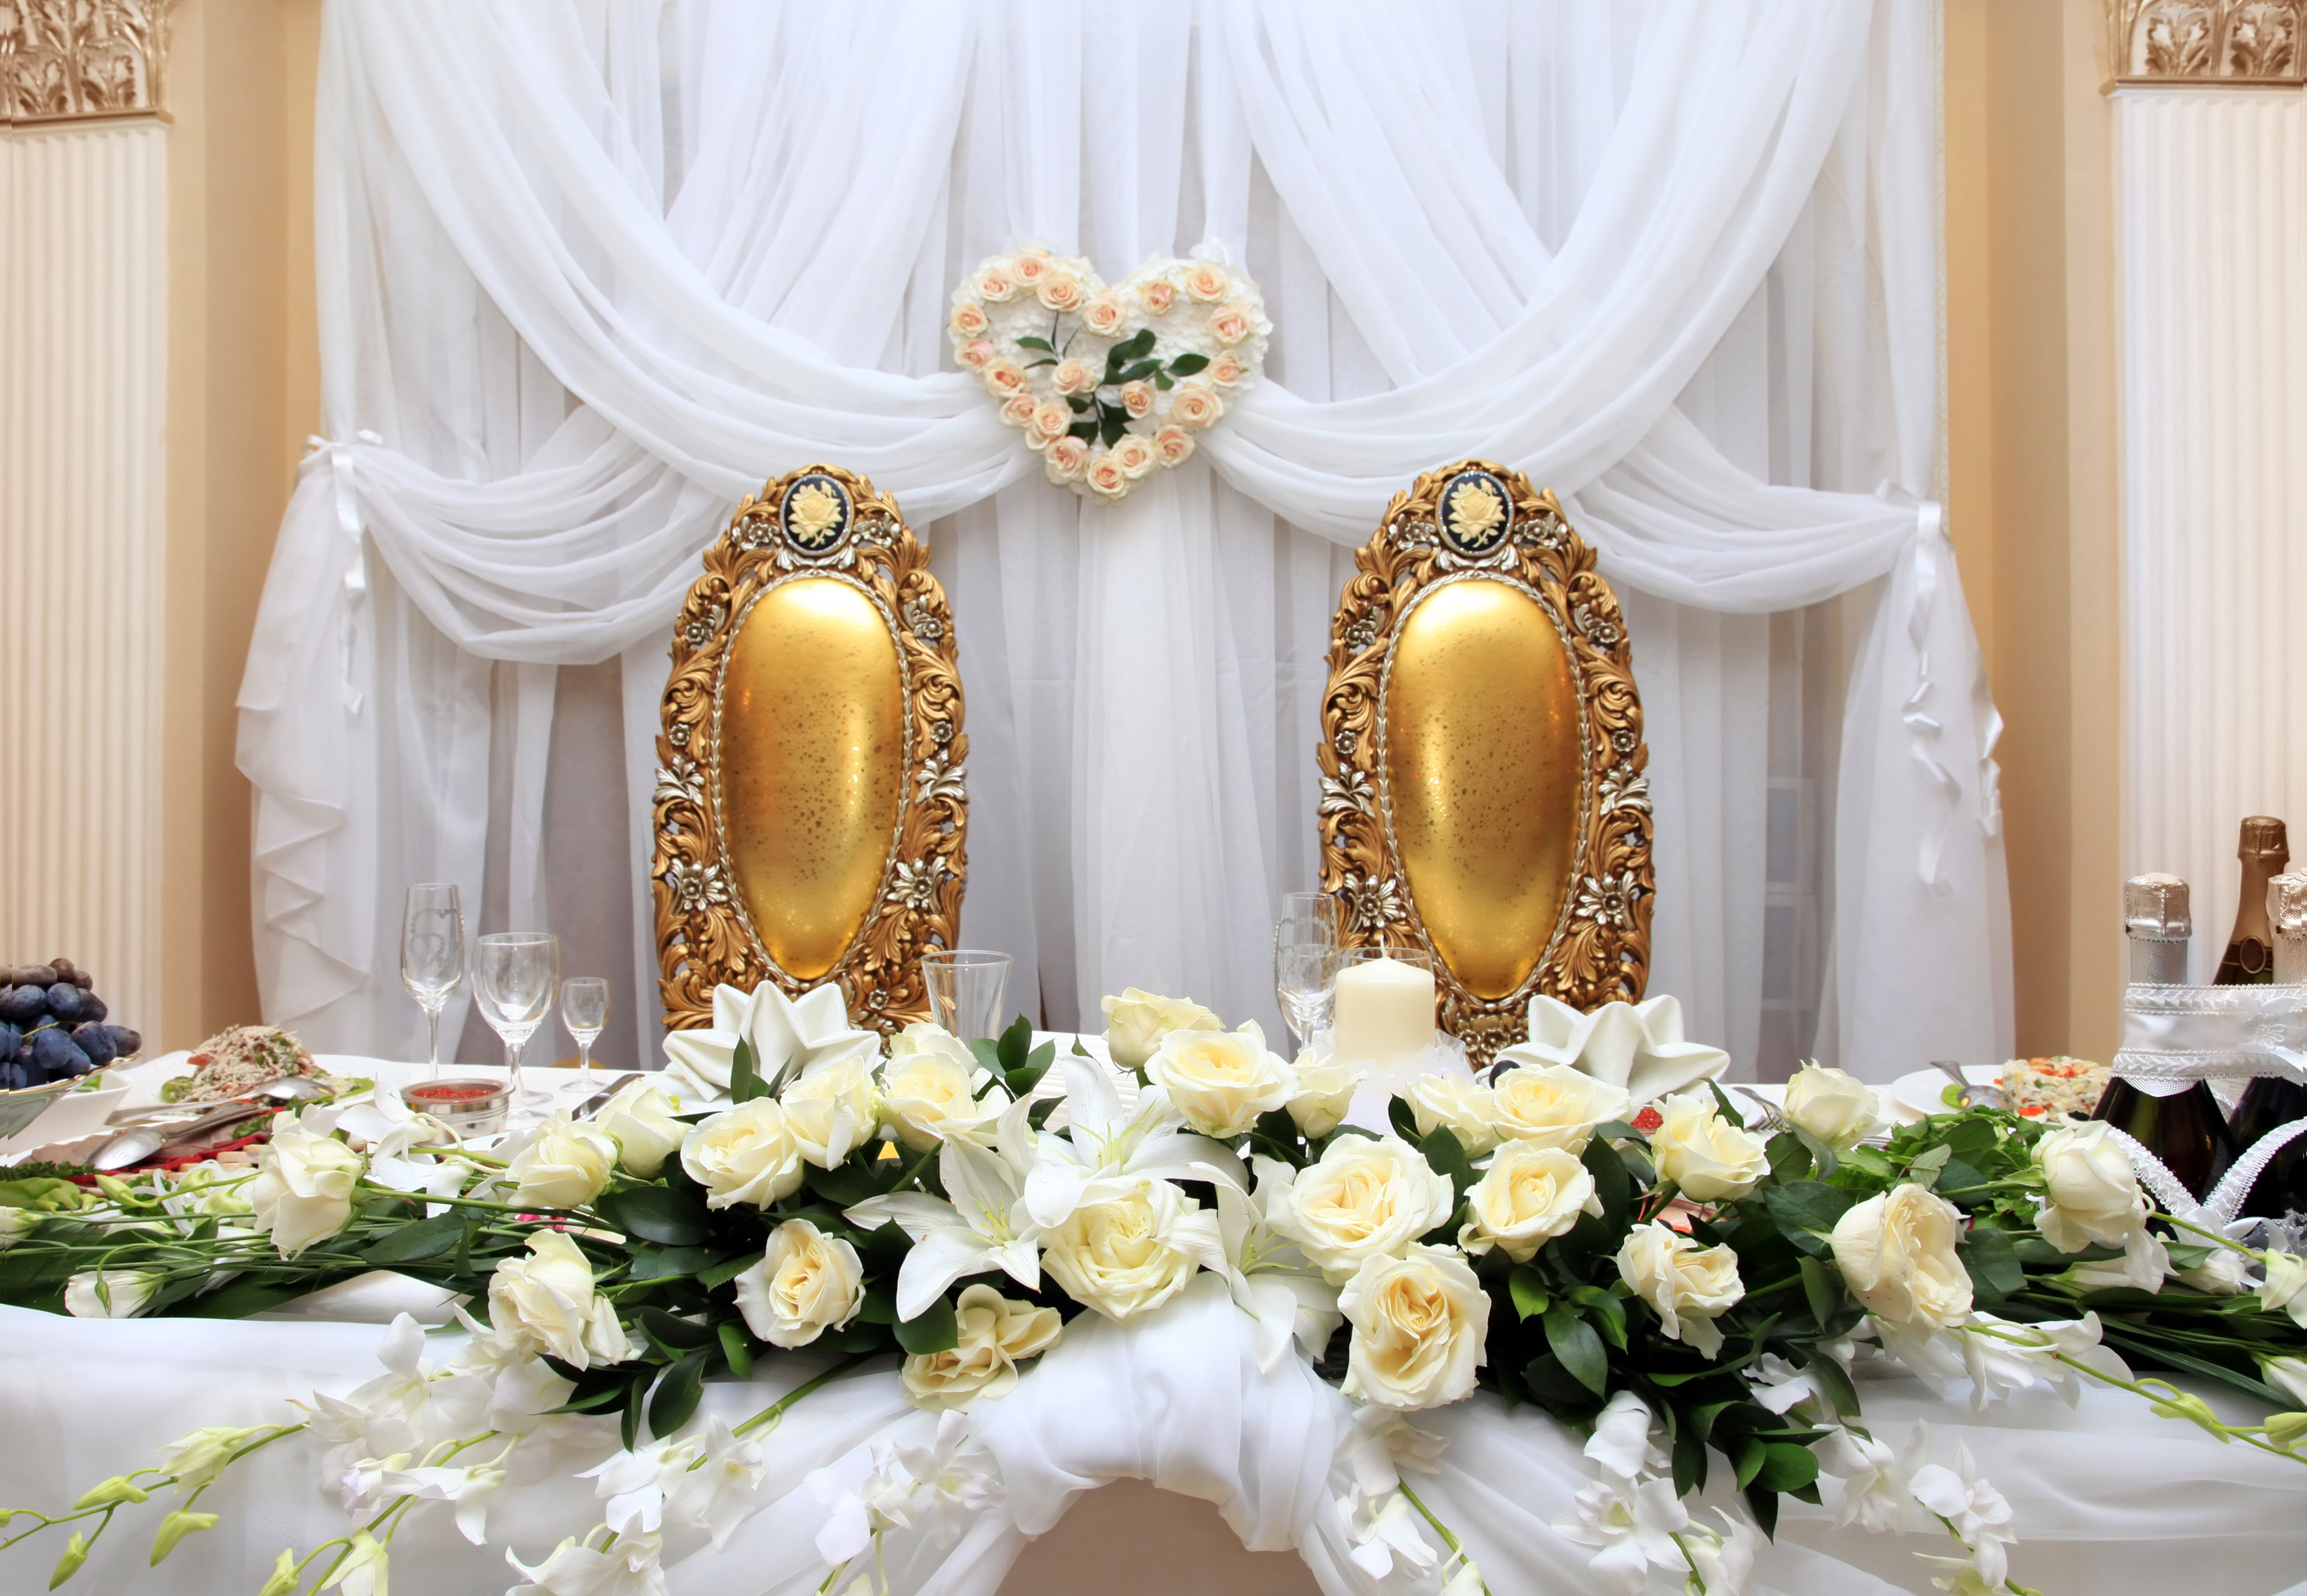 Your Wedding Banquet Table